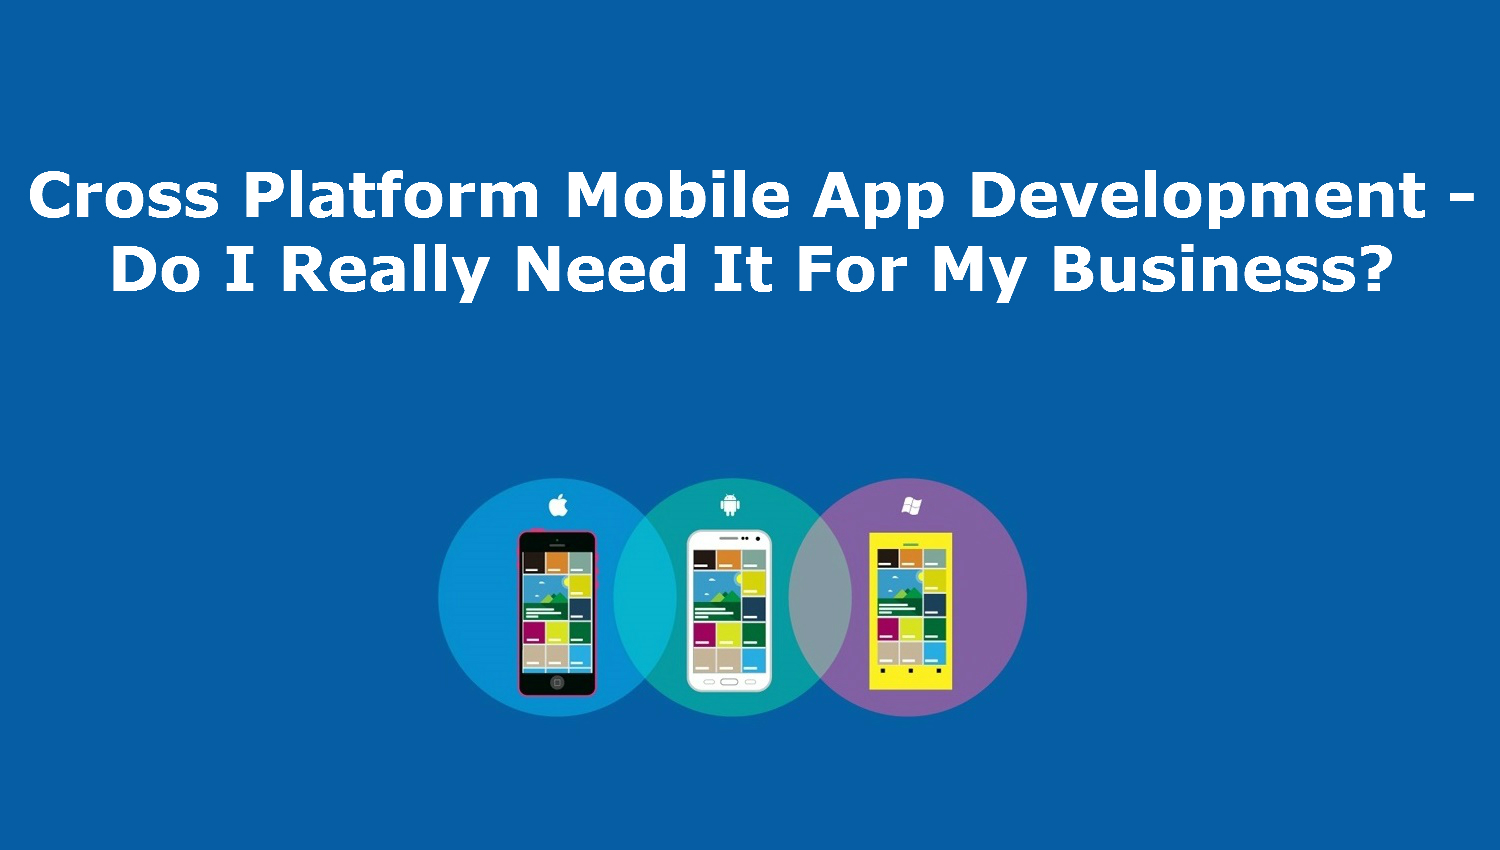 cross-platform-mobile-app-development-do-i-really-need-it-for-my-business